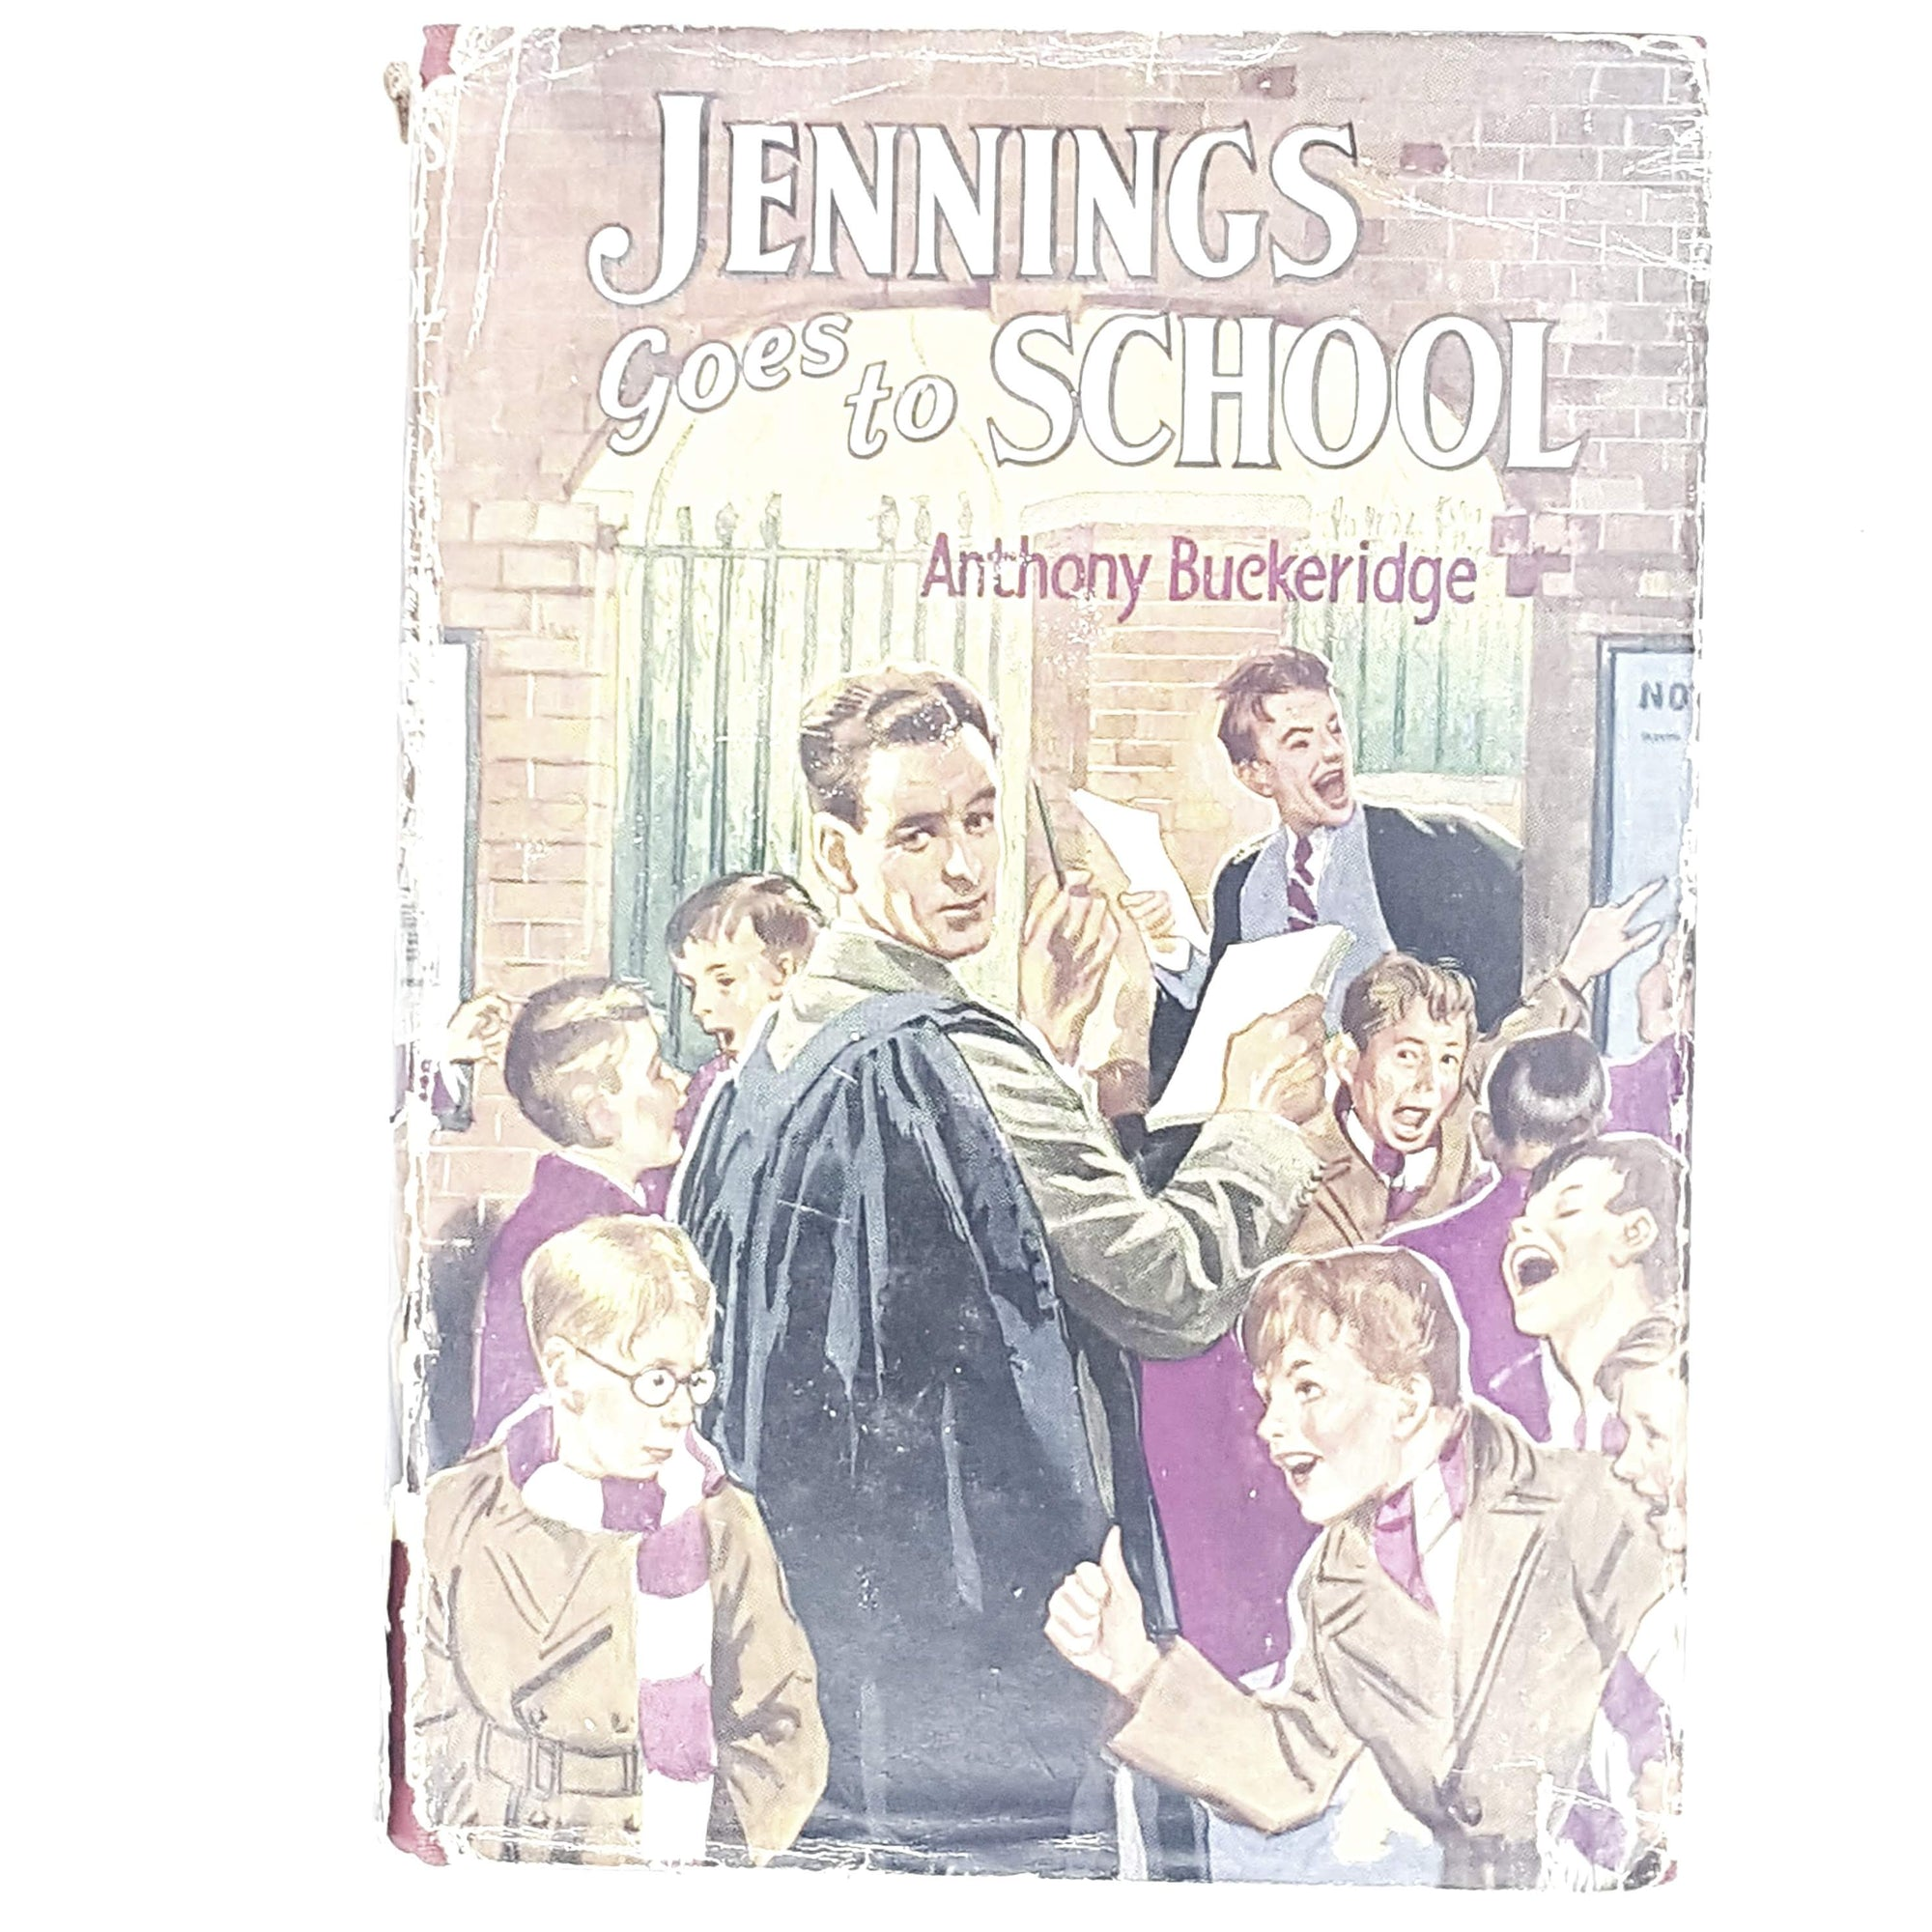 Jennings goes to School by Anthony Buckeridge 1951